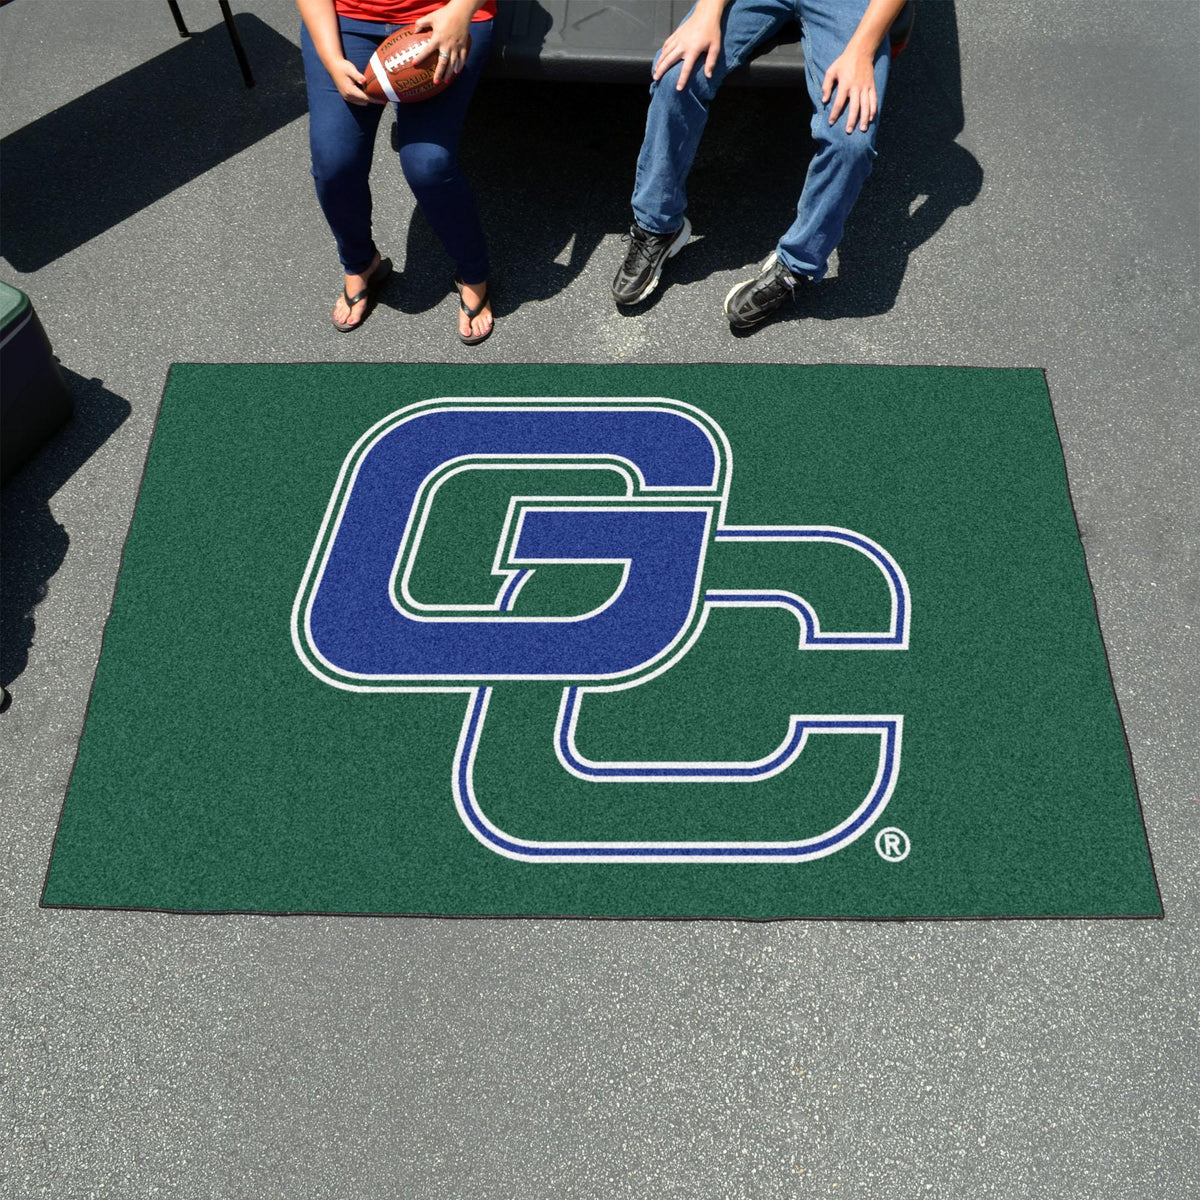 Collegiate - Ulti-Mat: A - L Collegiate Mats, Rectangular Mats, Ulti-Mat, Collegiate, Home Fan Mats Georgia College